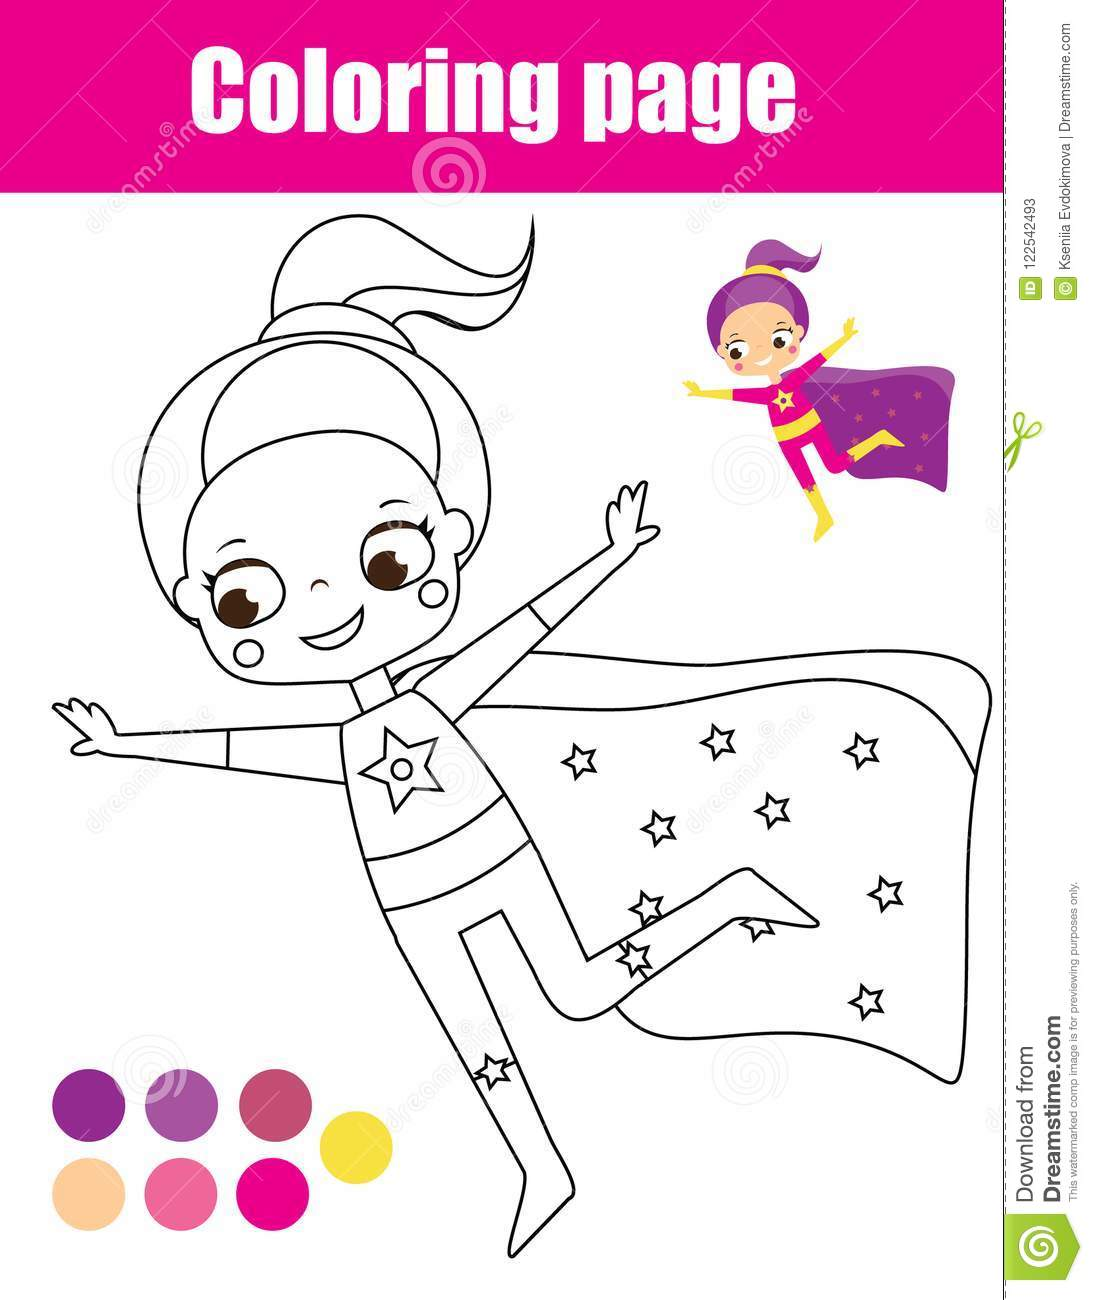 Free Adult Coloring Pages: Detailed Printable Coloring Pages for ... | 1300x1093